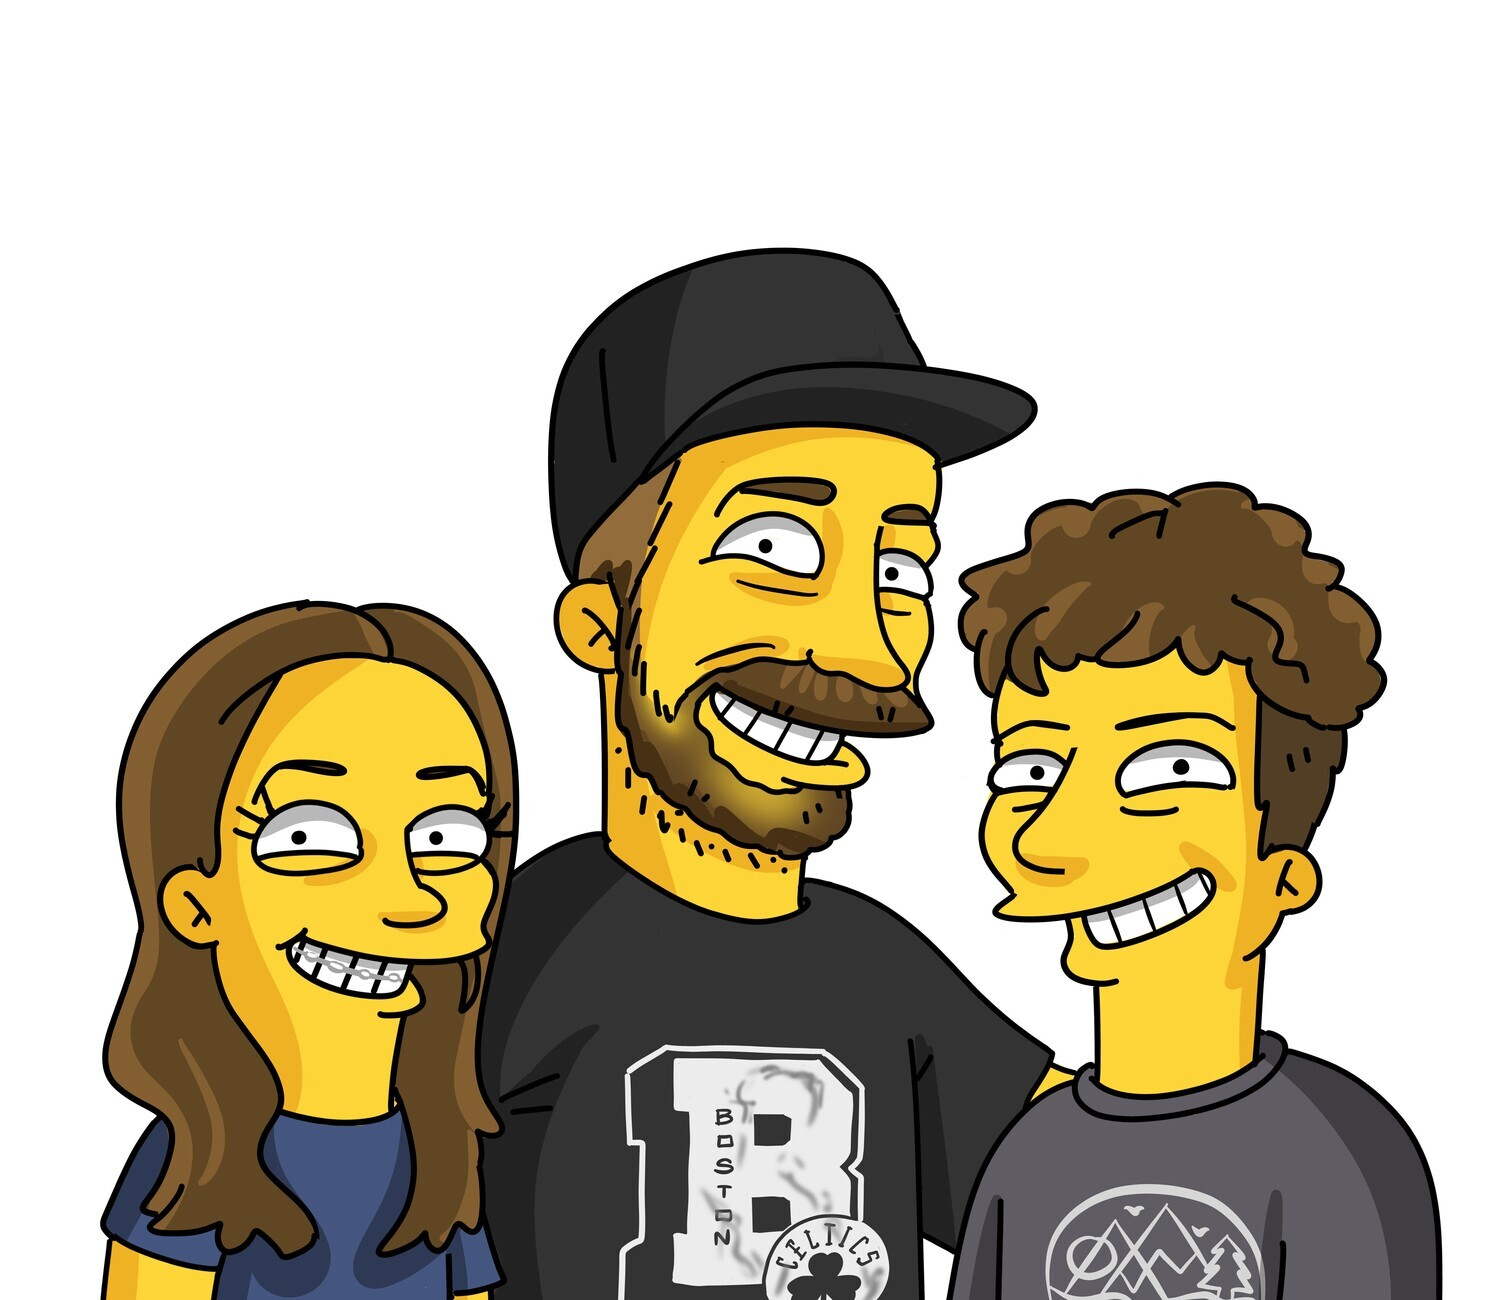 3 PERSON PORTRAIT HAND DRAWN AND EMAILED TO YOU WITHIN 10 DAYS, REVISED UNTIL YOU ARE HAPPY